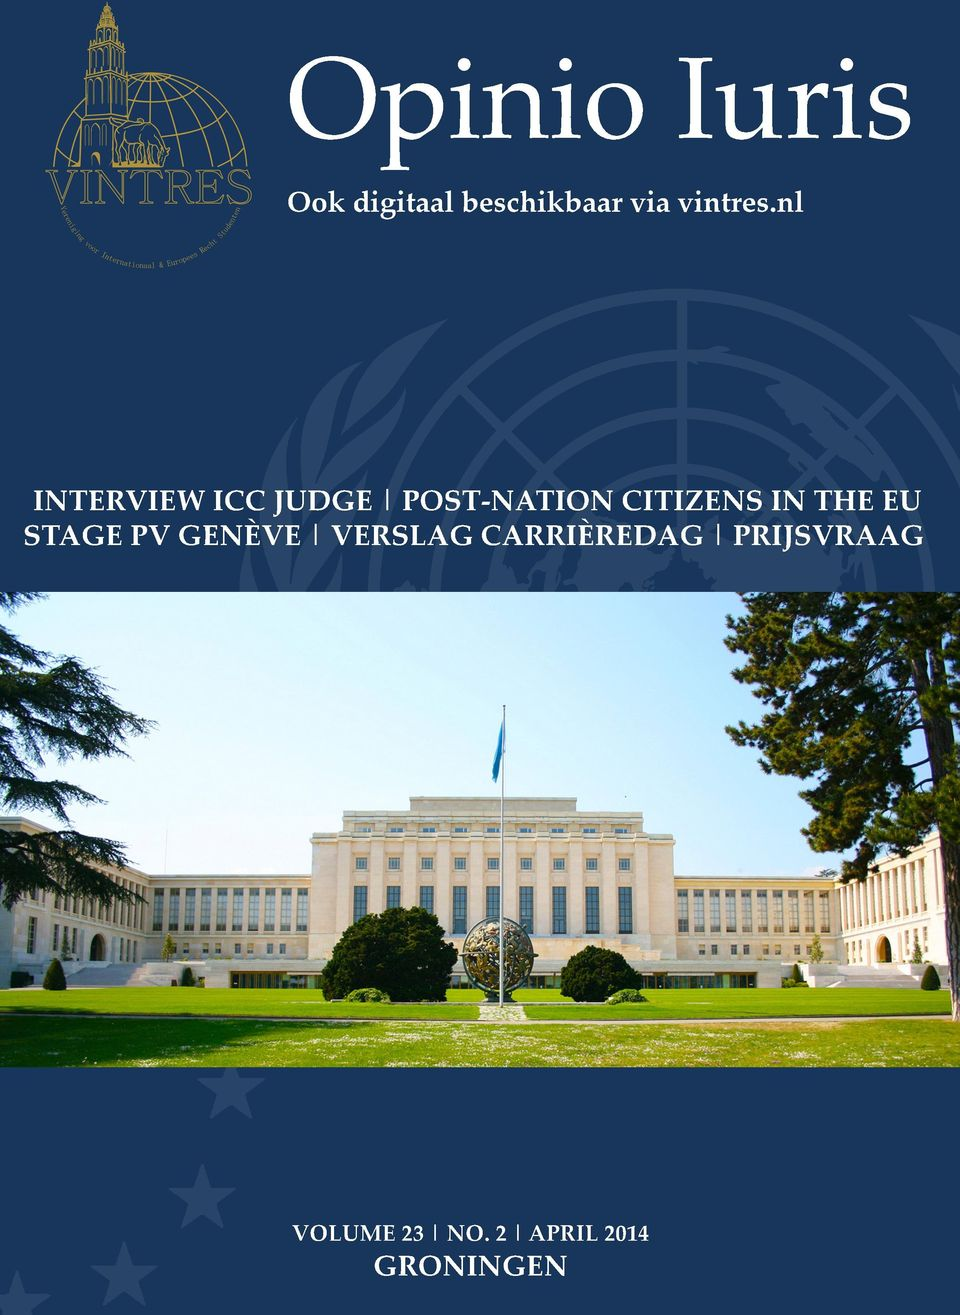 nl INTERVIEW ICC JUDGE POST-NATION CITIZENS IN